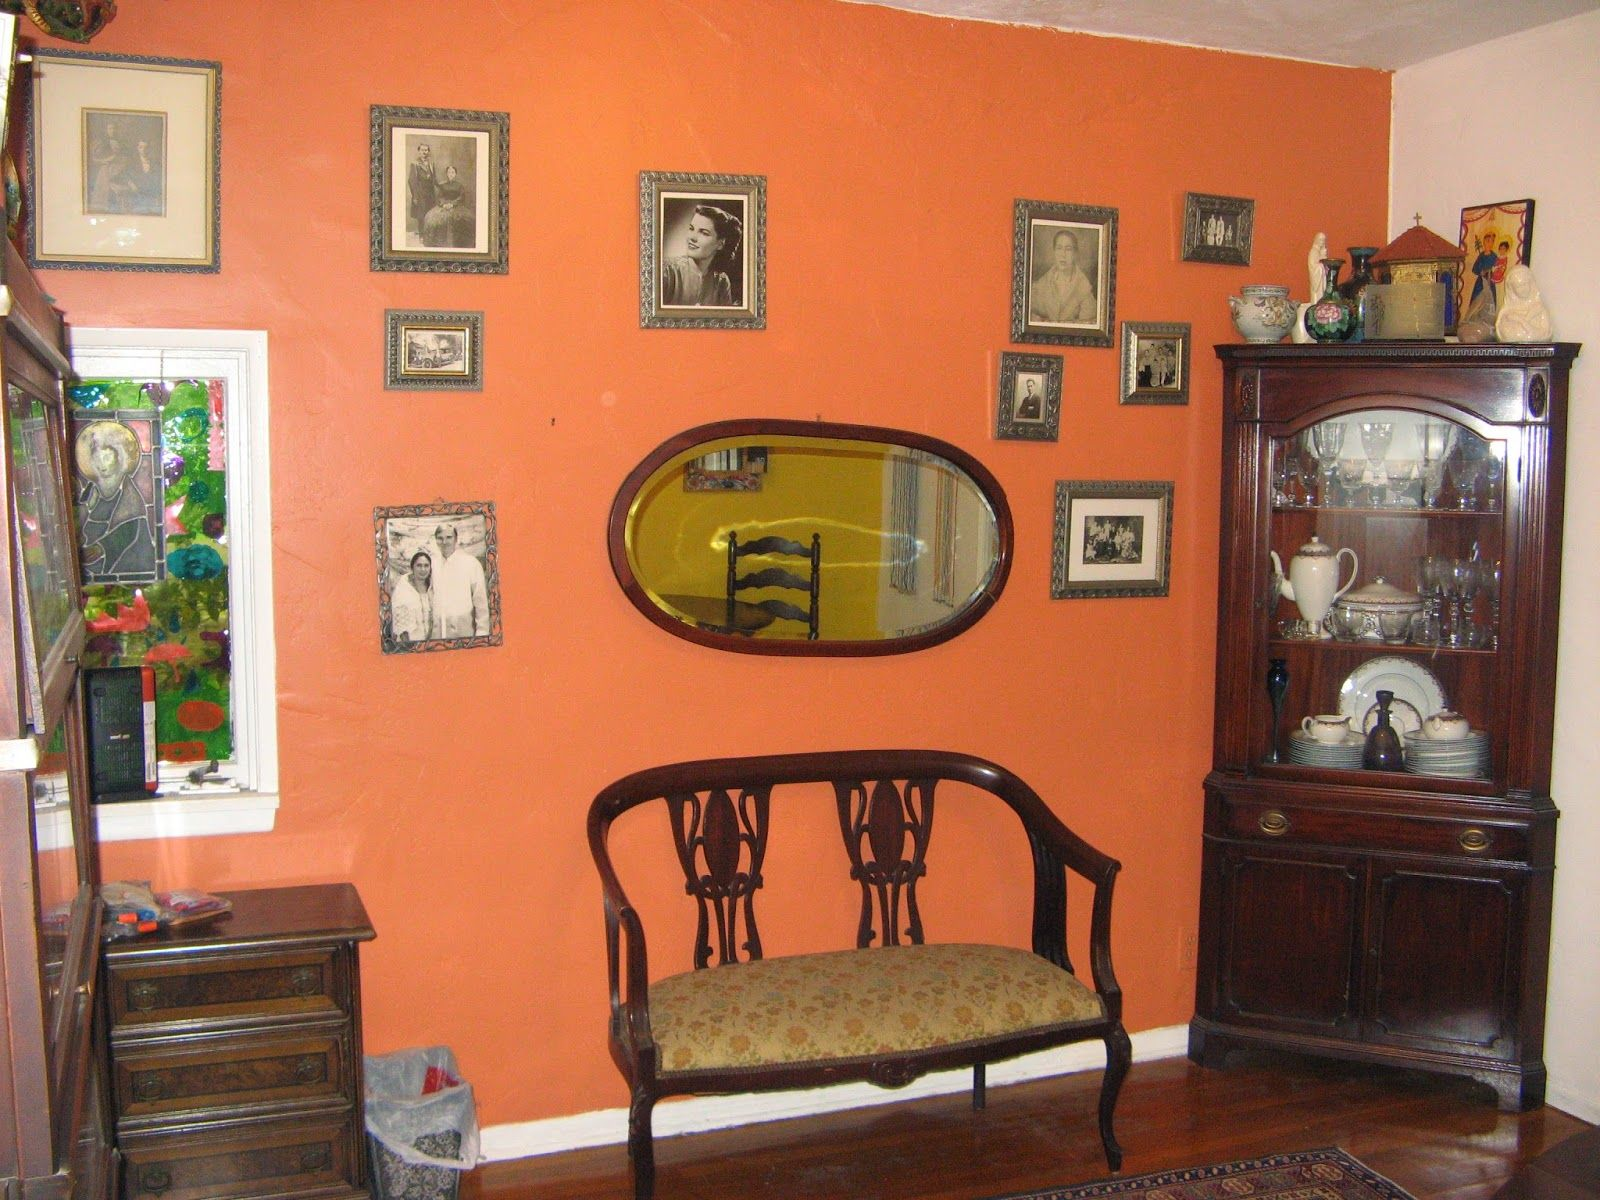 The Brass Deco Frame and My Ancestral Wall